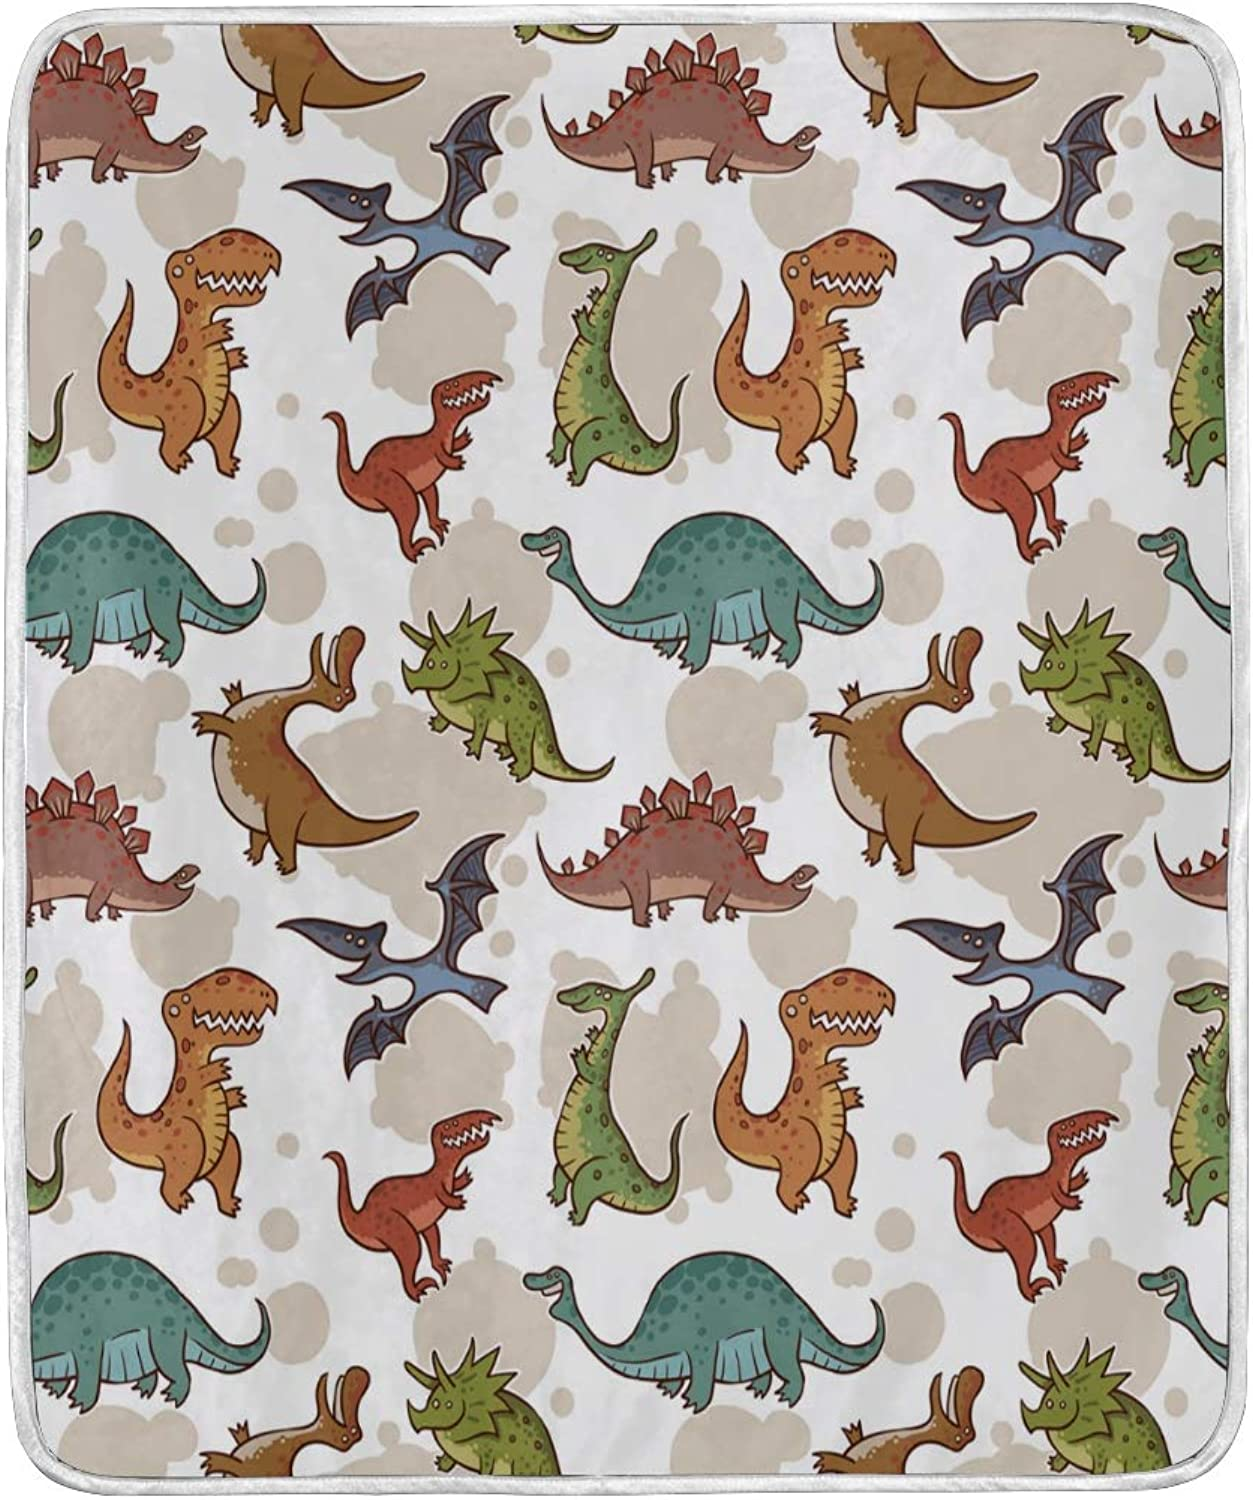 OPRINT Home Decor Stylish Prehistoric Dinosaurs Bed Blanket Lightweight Comfy Soft Warm Blanket Throw Size 50 x 60 inches for Kids Boys Women Sofa Couch